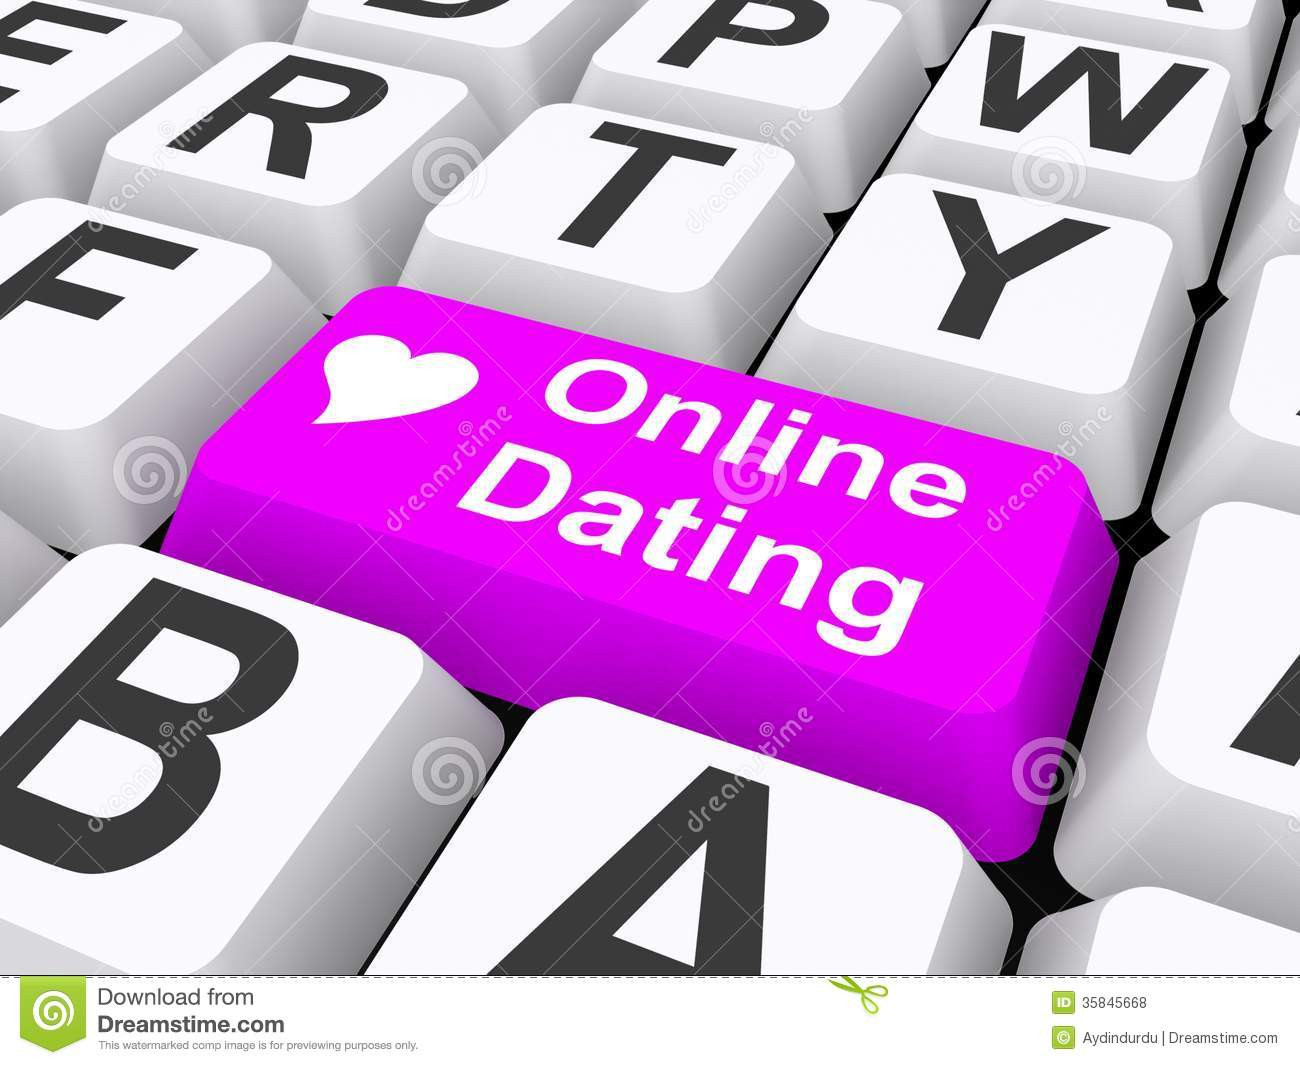 dating online no photo Online ladies since there is a time difference, if you wish to meet more ladies for live chat, it's best to come during their daytime hours.